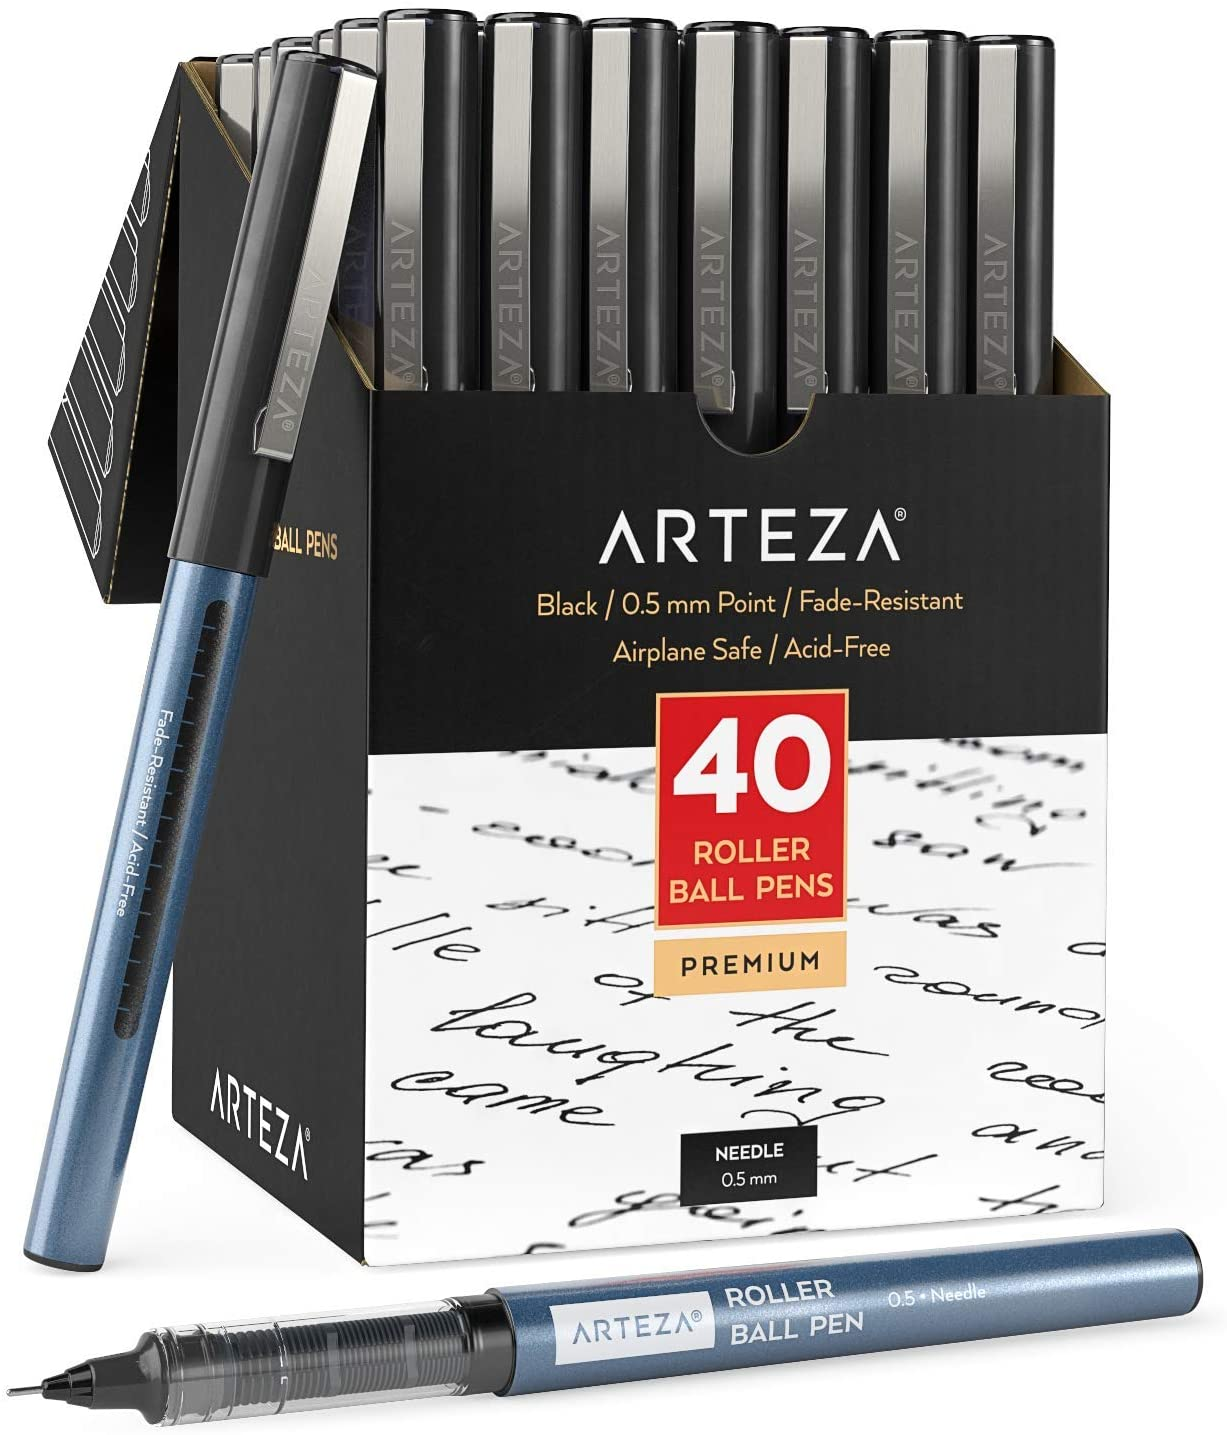 Arteza Rollerball Pens Fine Point, Set of 40 Black Liquid Ink, Extra Fine 0.5 mm Needle Tip Pen, Make Precise Lines for Writing, Notetaking, and Drawing